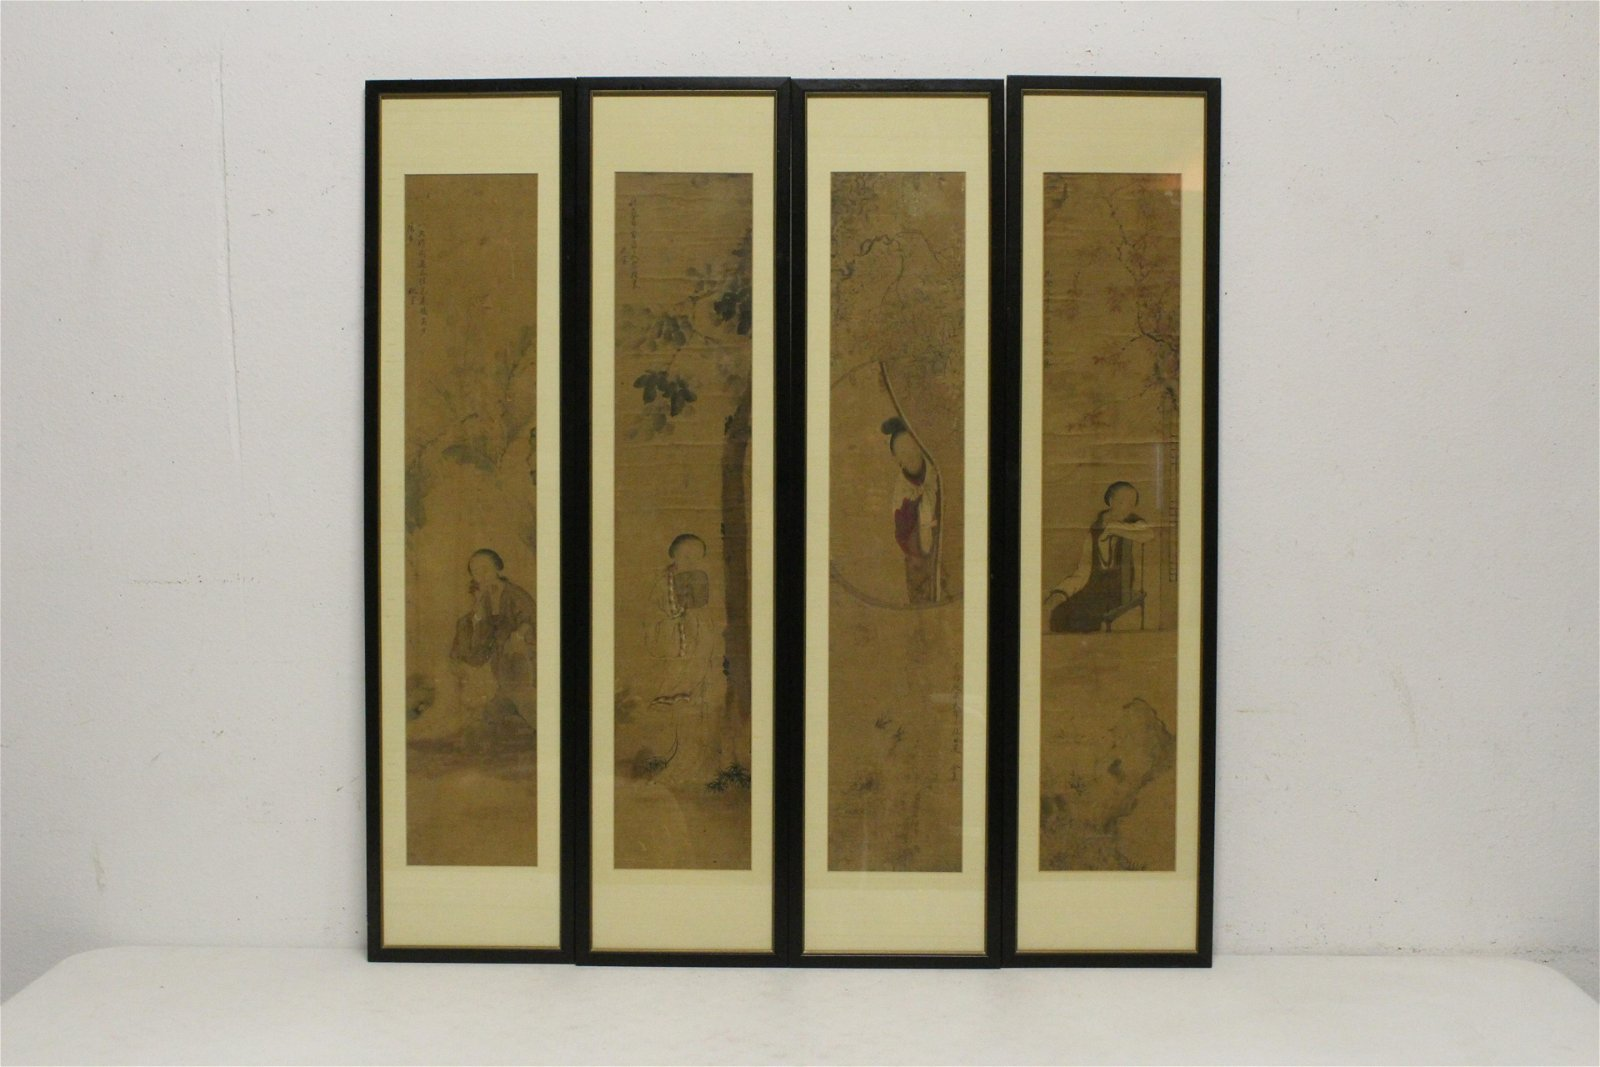 Set of 4 Chinese antique signed watercolor panel